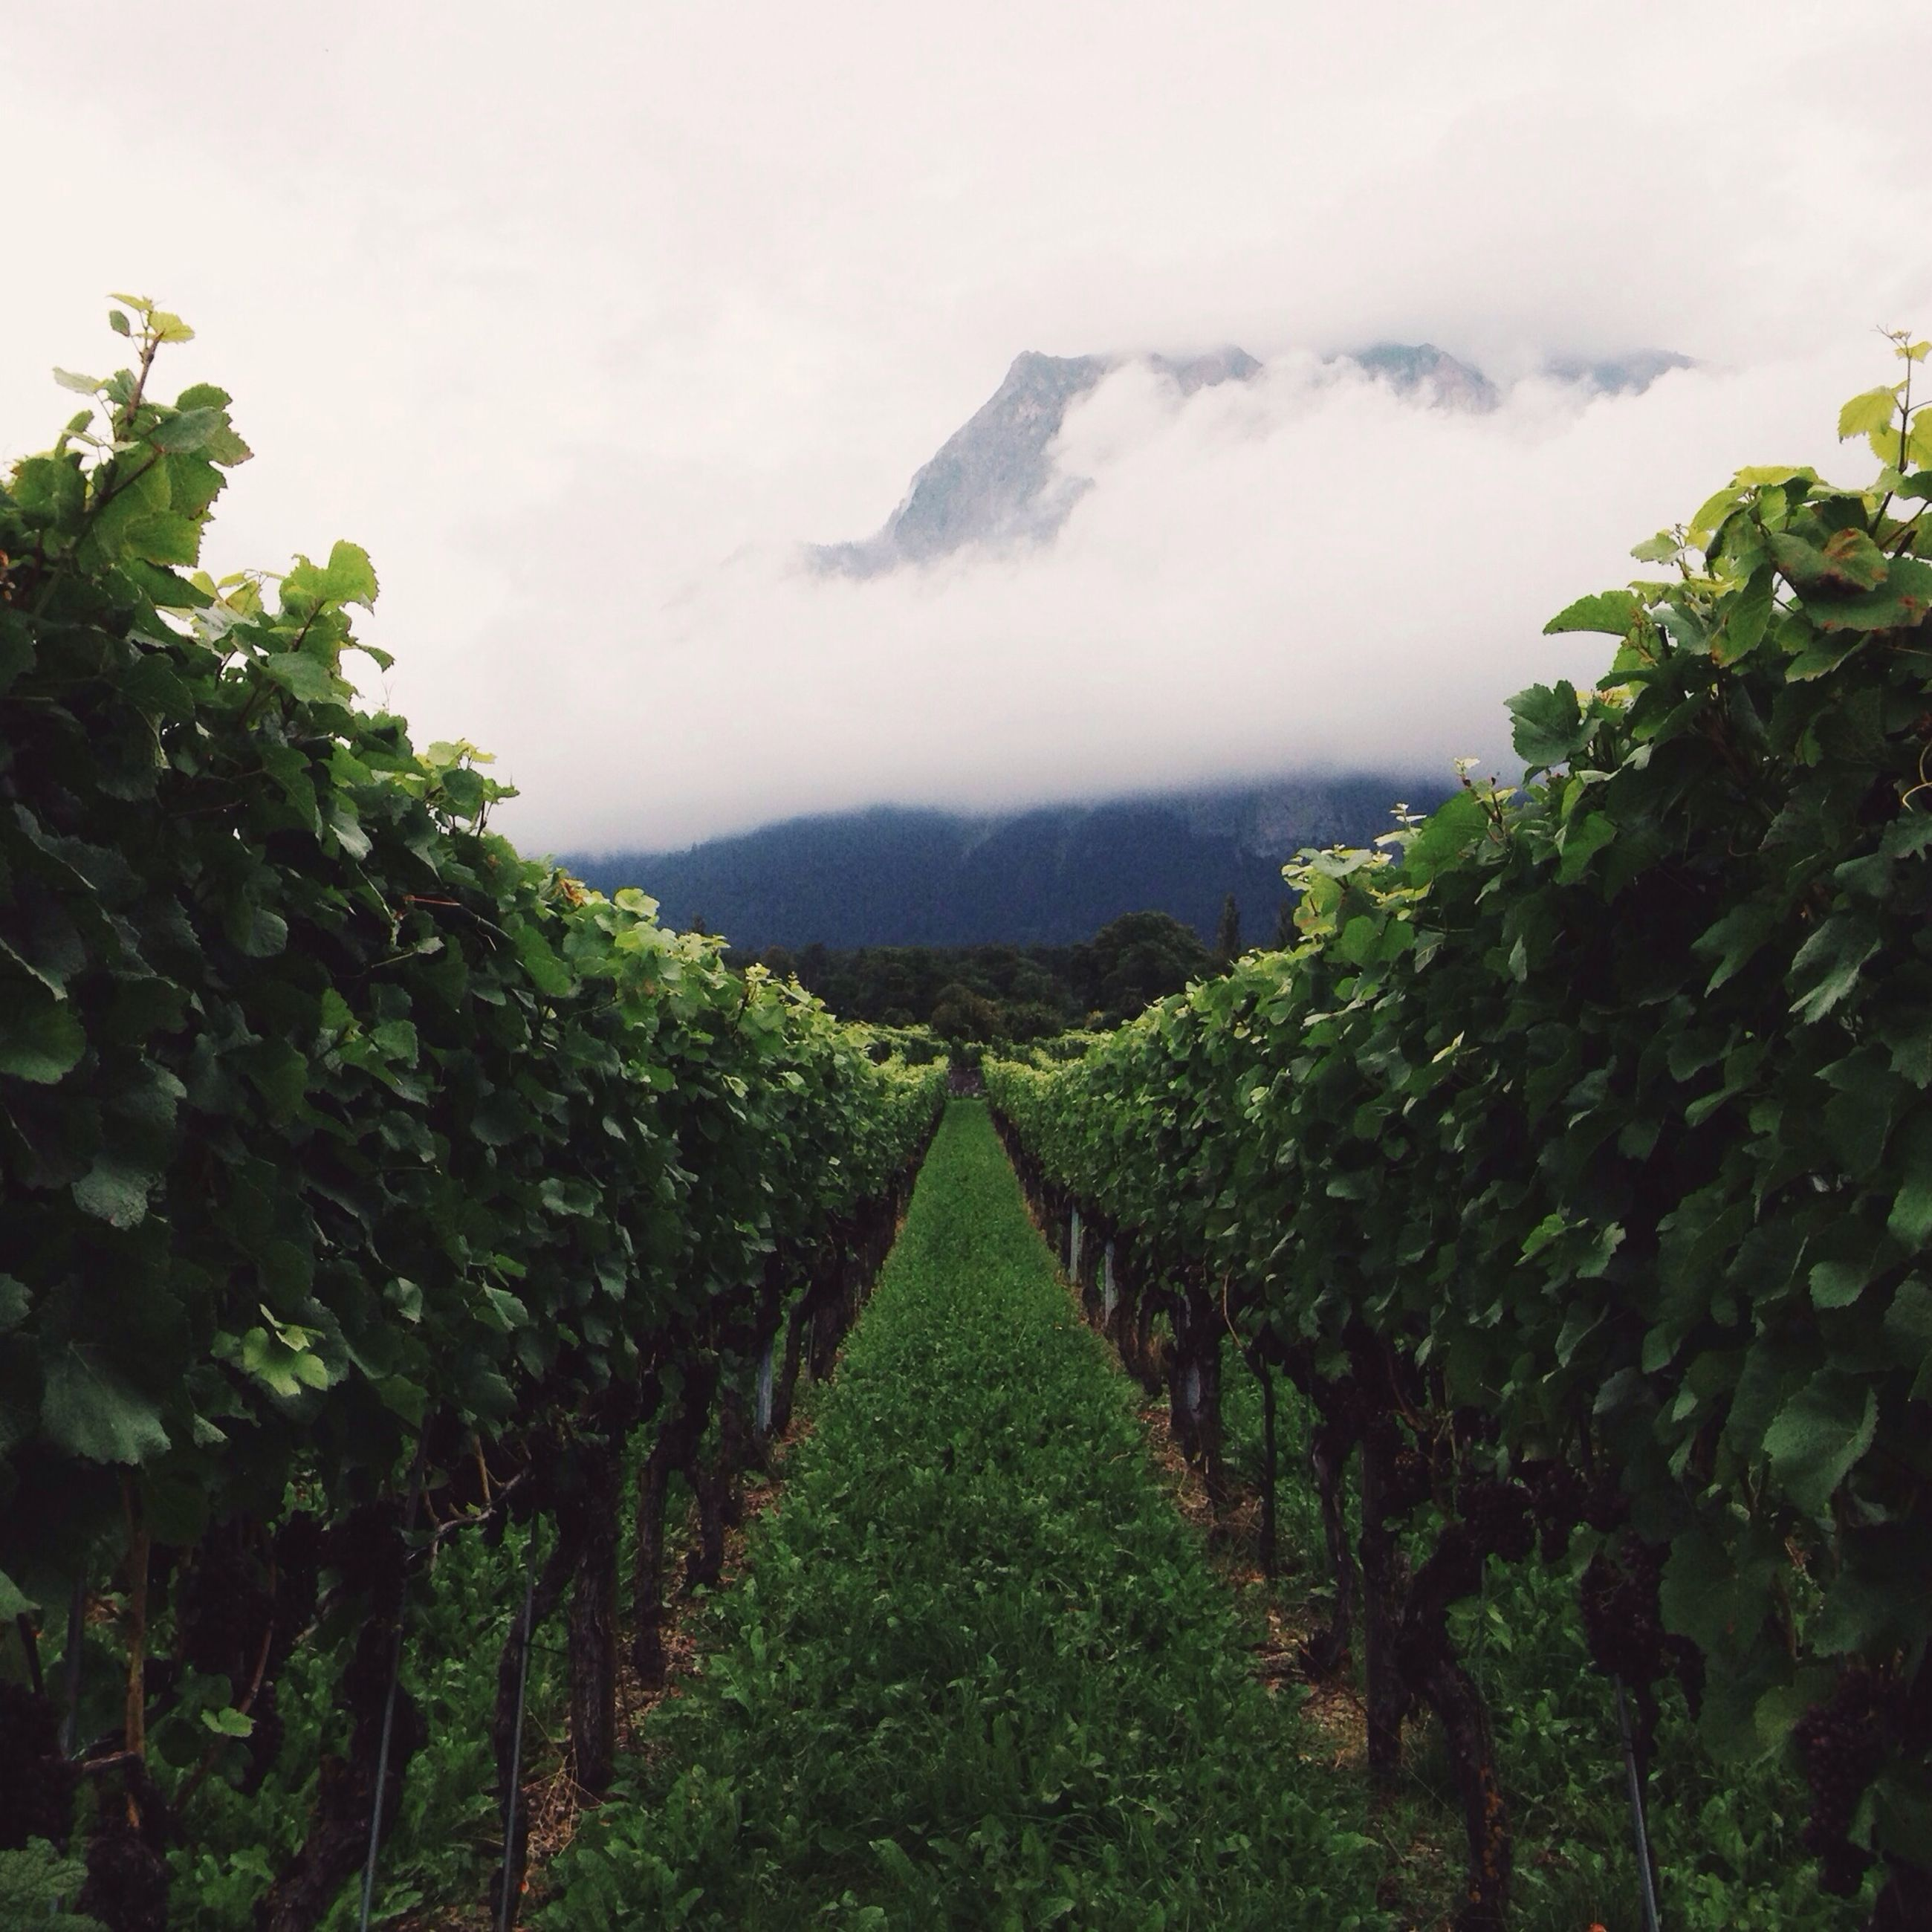 green color, growth, tree, mountain, sky, tranquility, nature, tranquil scene, scenics, beauty in nature, landscape, fog, vineyard, agriculture, lush foliage, plant, rural scene, cloud - sky, day, green